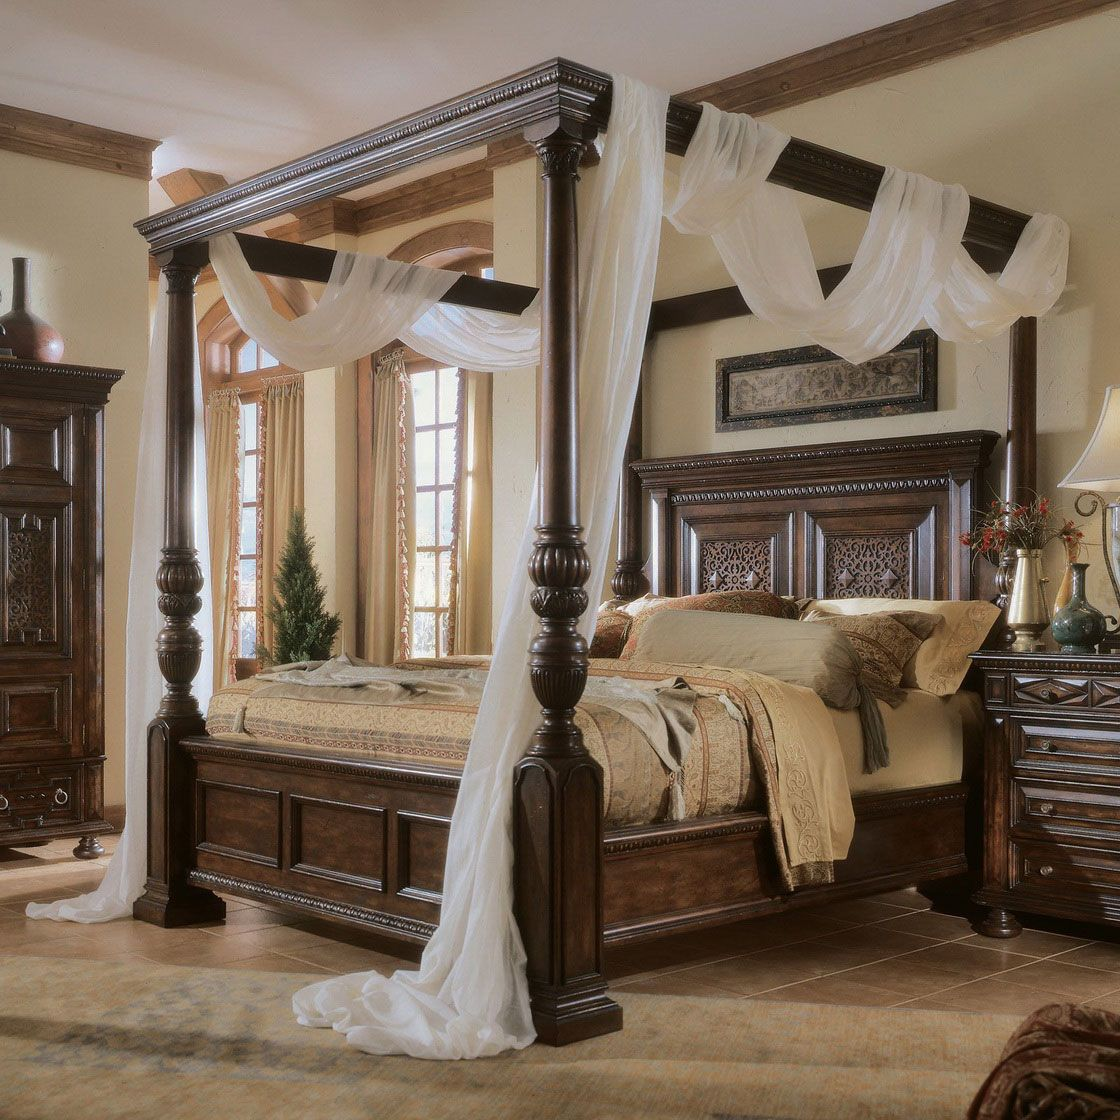 Gothic canopy bed curtains - Victorian Bedroom Furniture 5